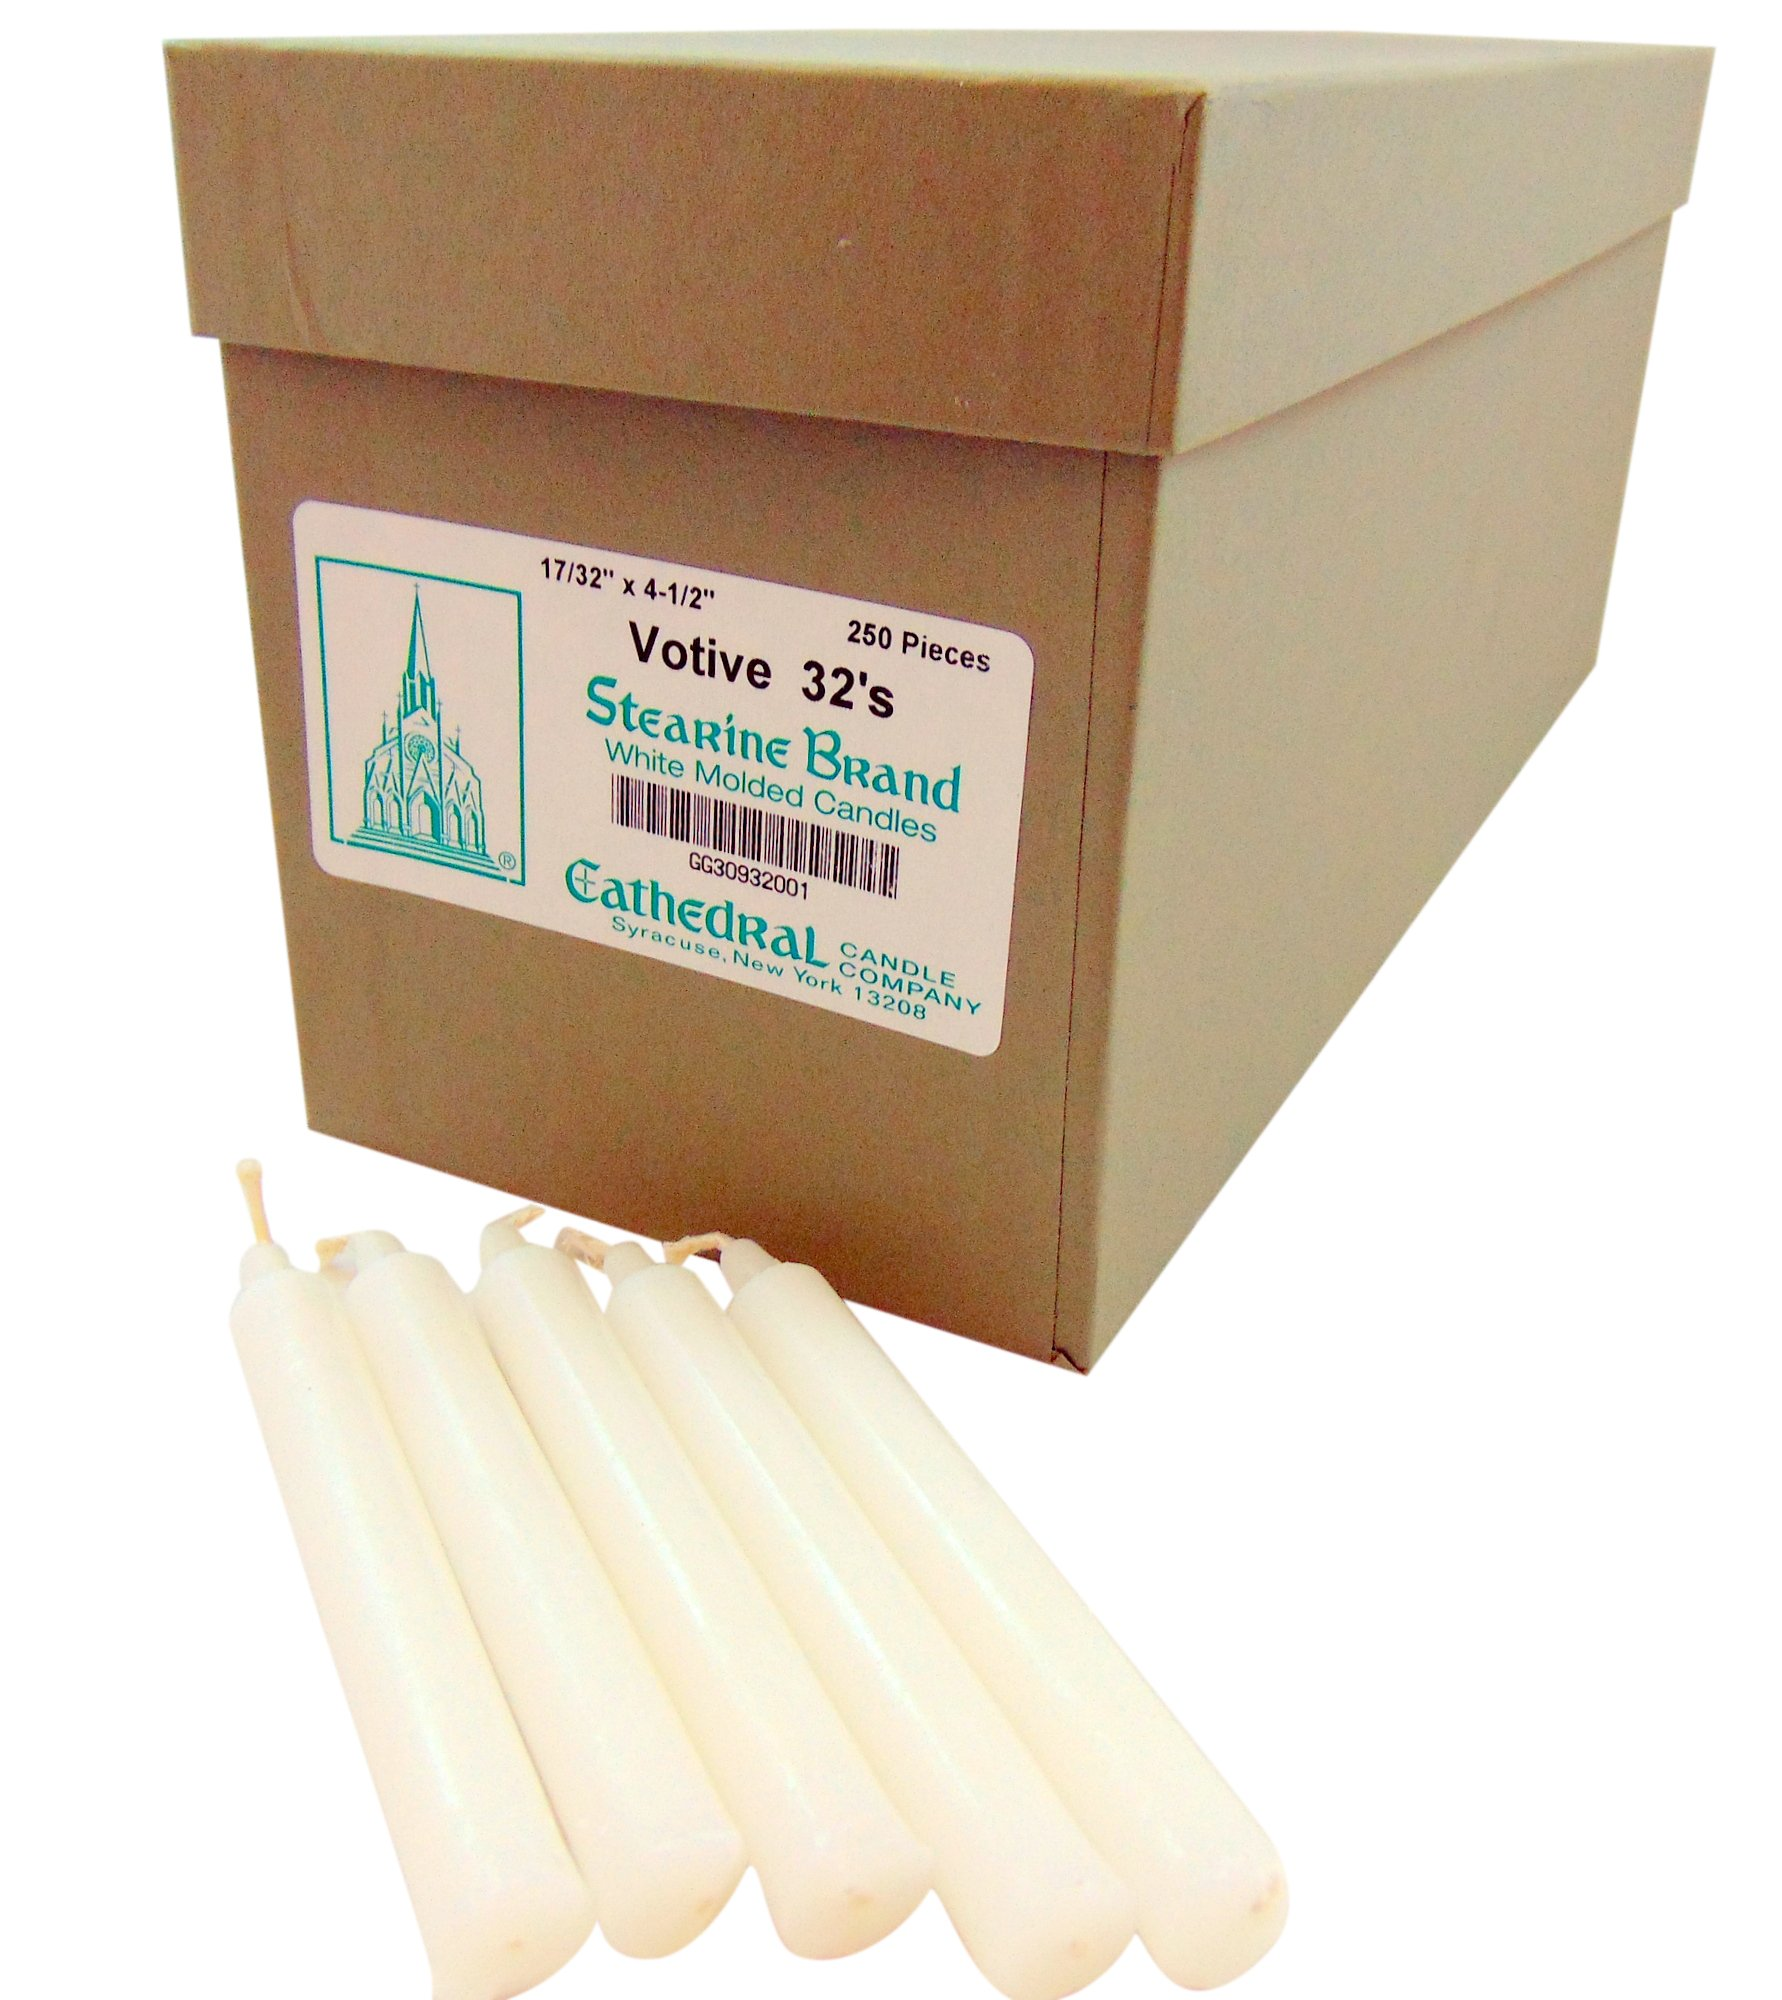 Church Service White Molded Votive Candles 250 Piece Box